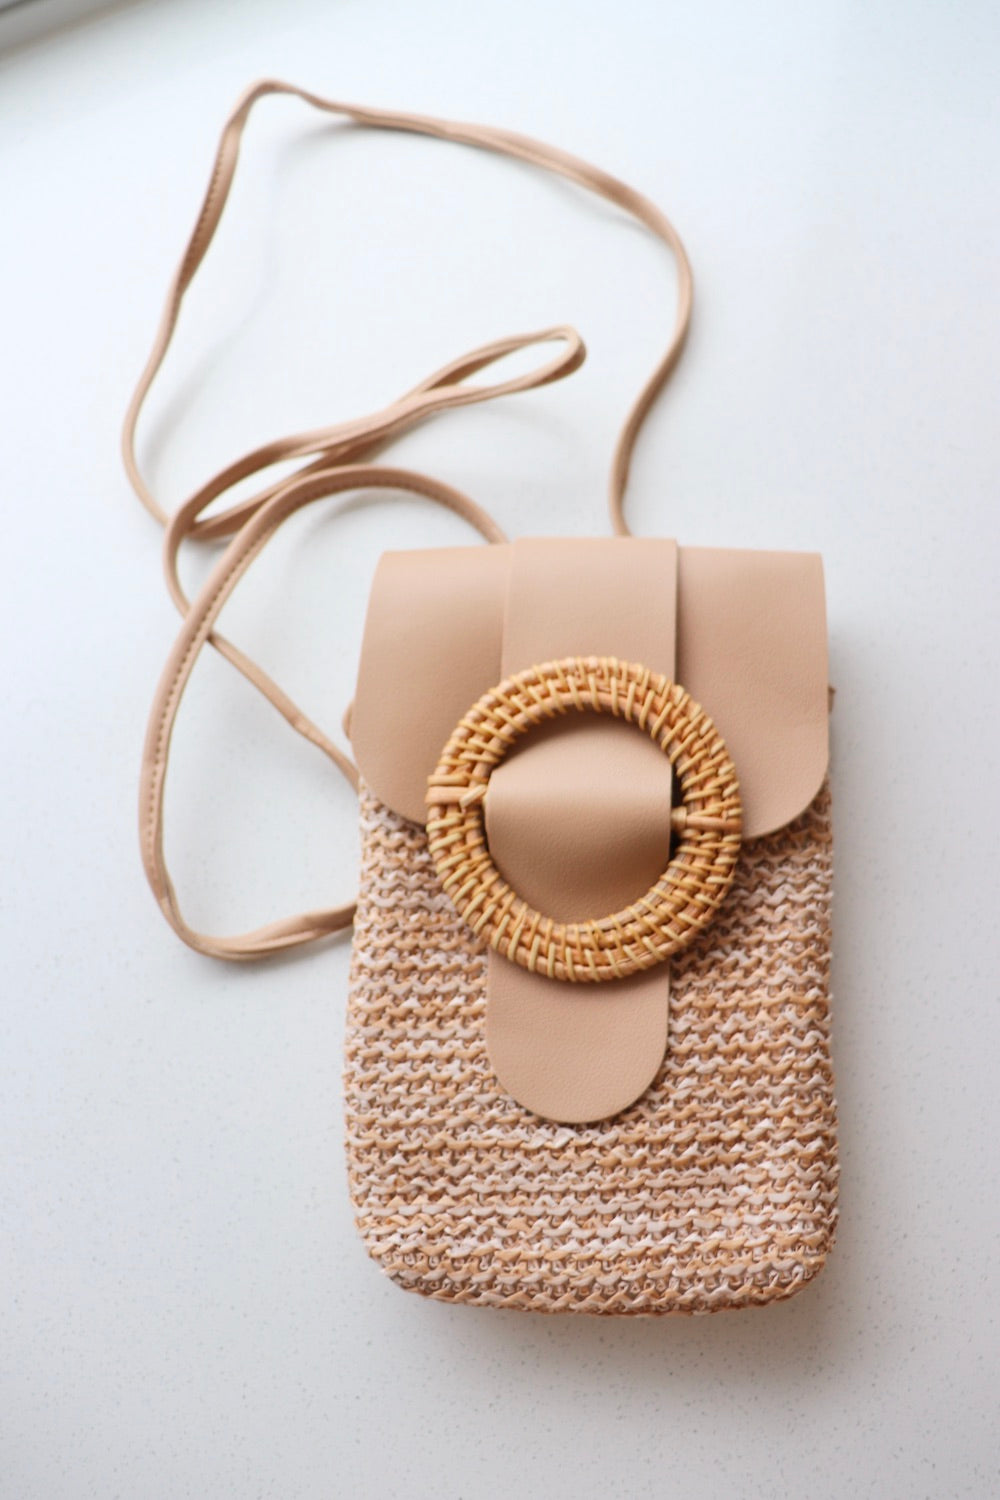 Rattan Mobile Phone Bag Round Clip In Caramel